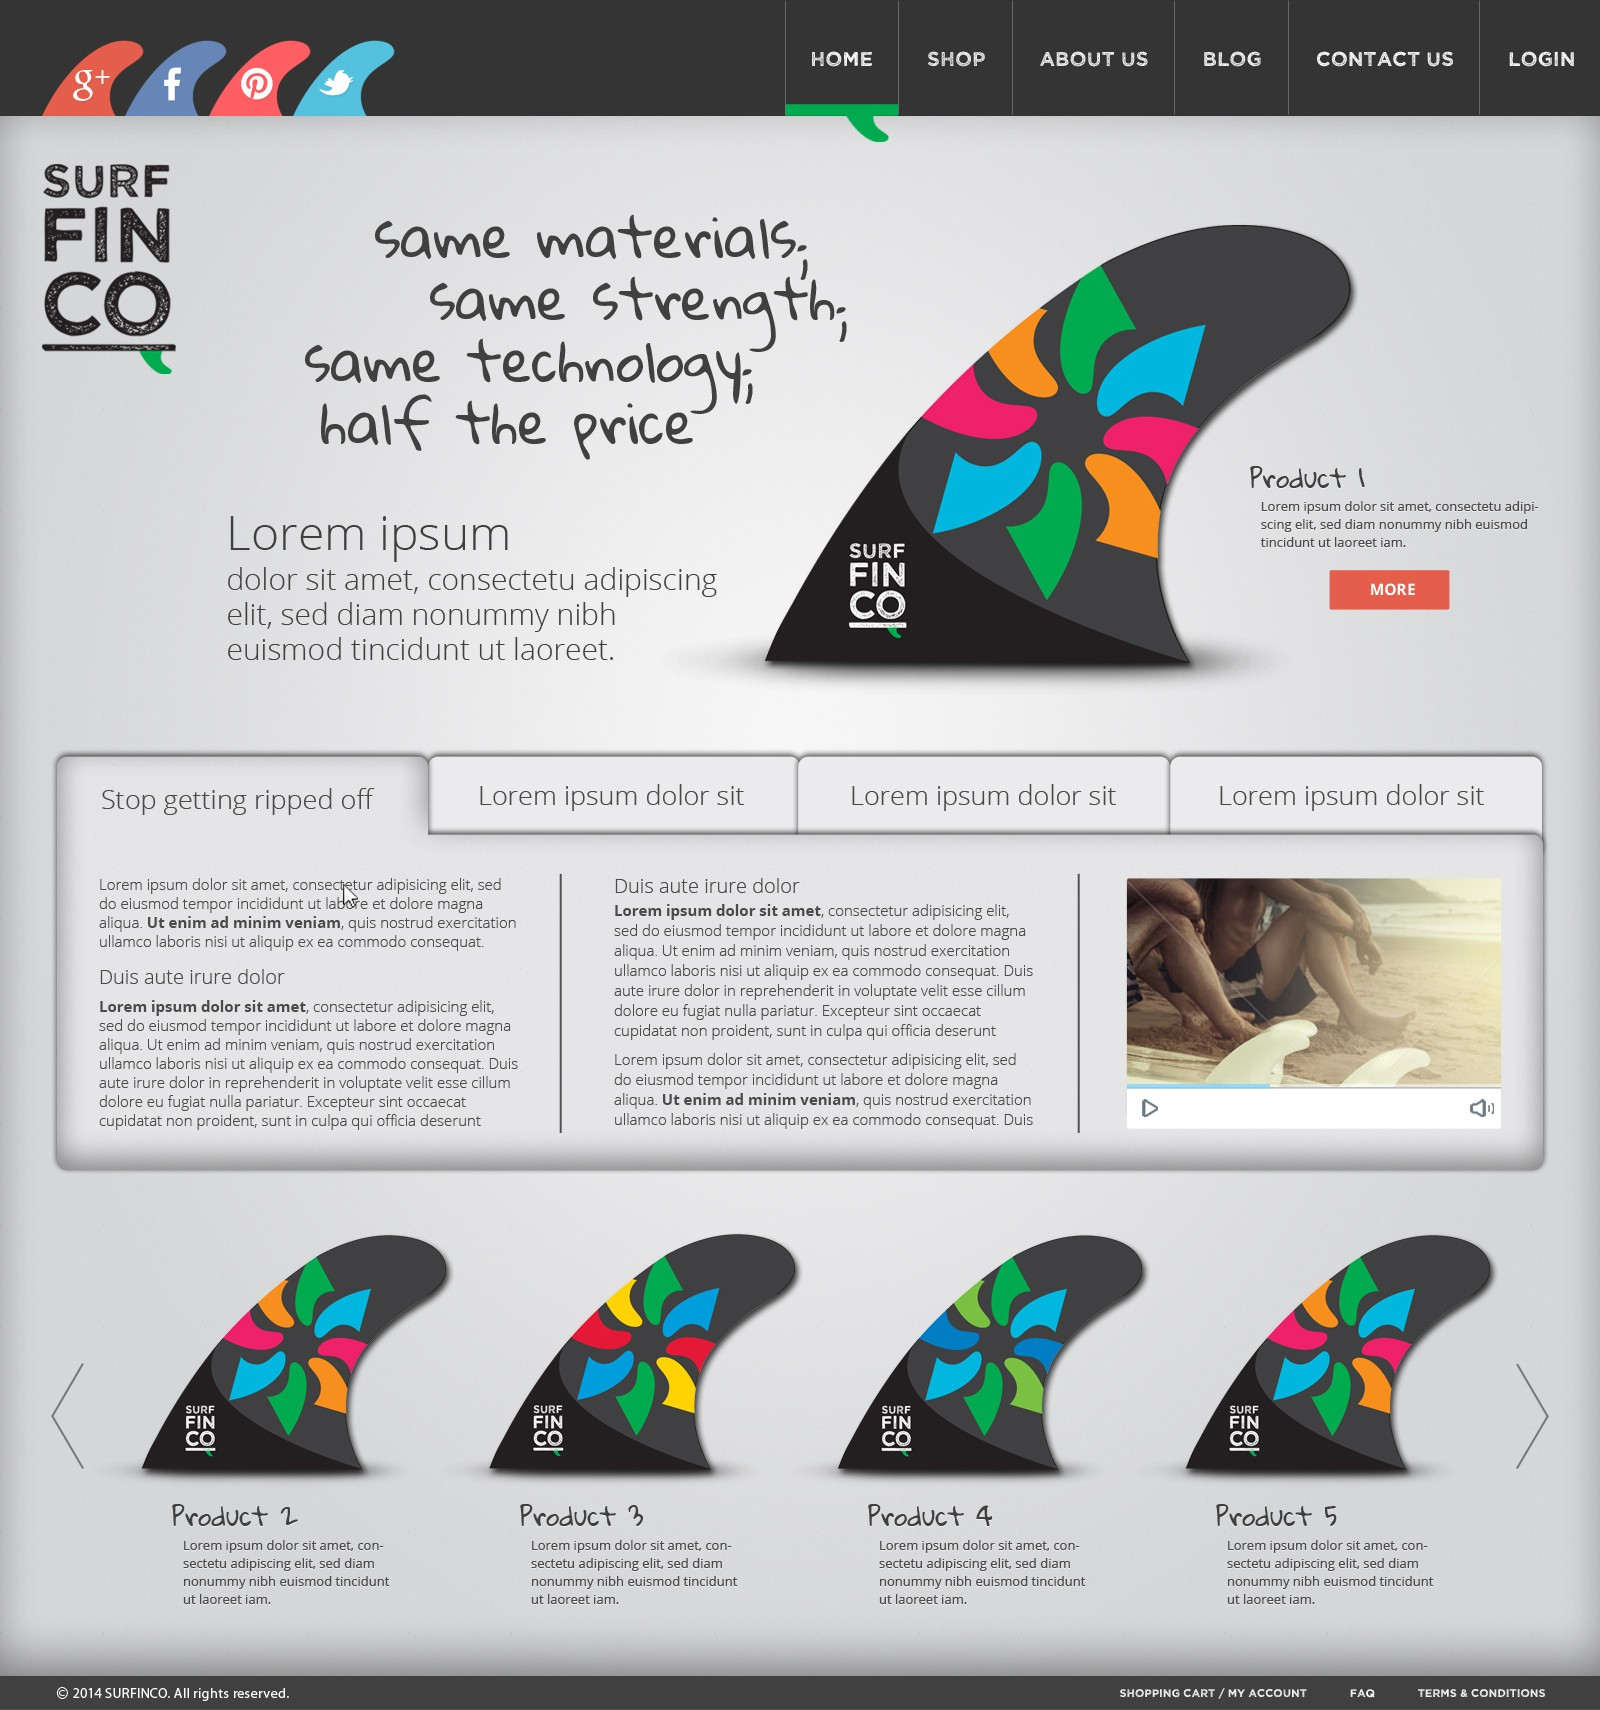 Design a website for an exciting new surf company